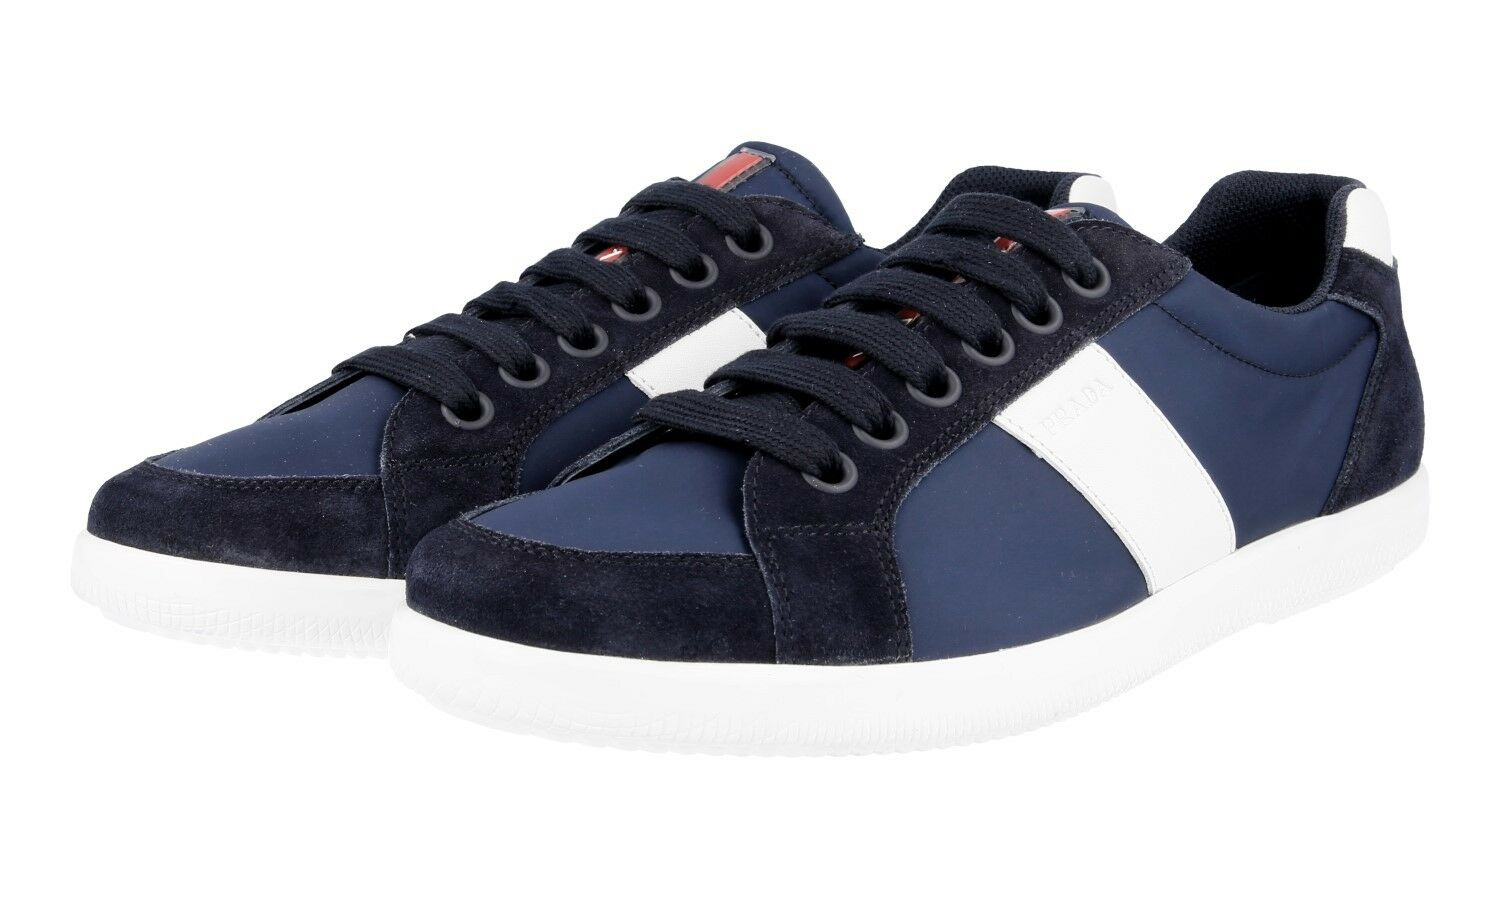 AUTHENTIC PRADA SNEAKERS SHOES 4E2845 blueE WHITE NEW 6,5 40,5 41